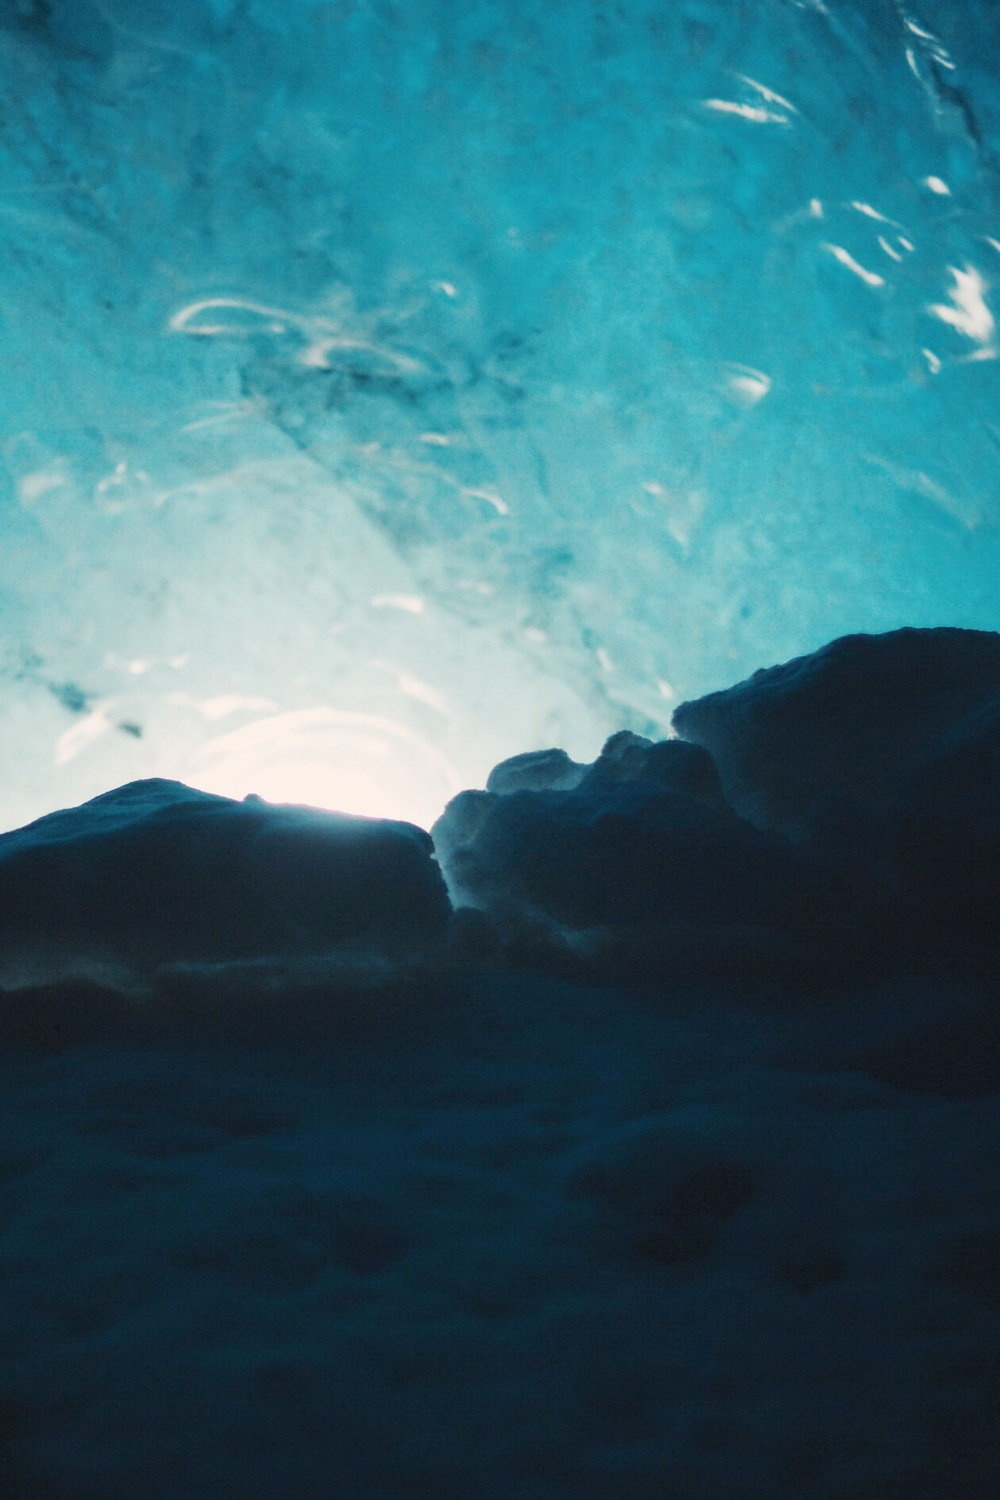 blue ice cave snow